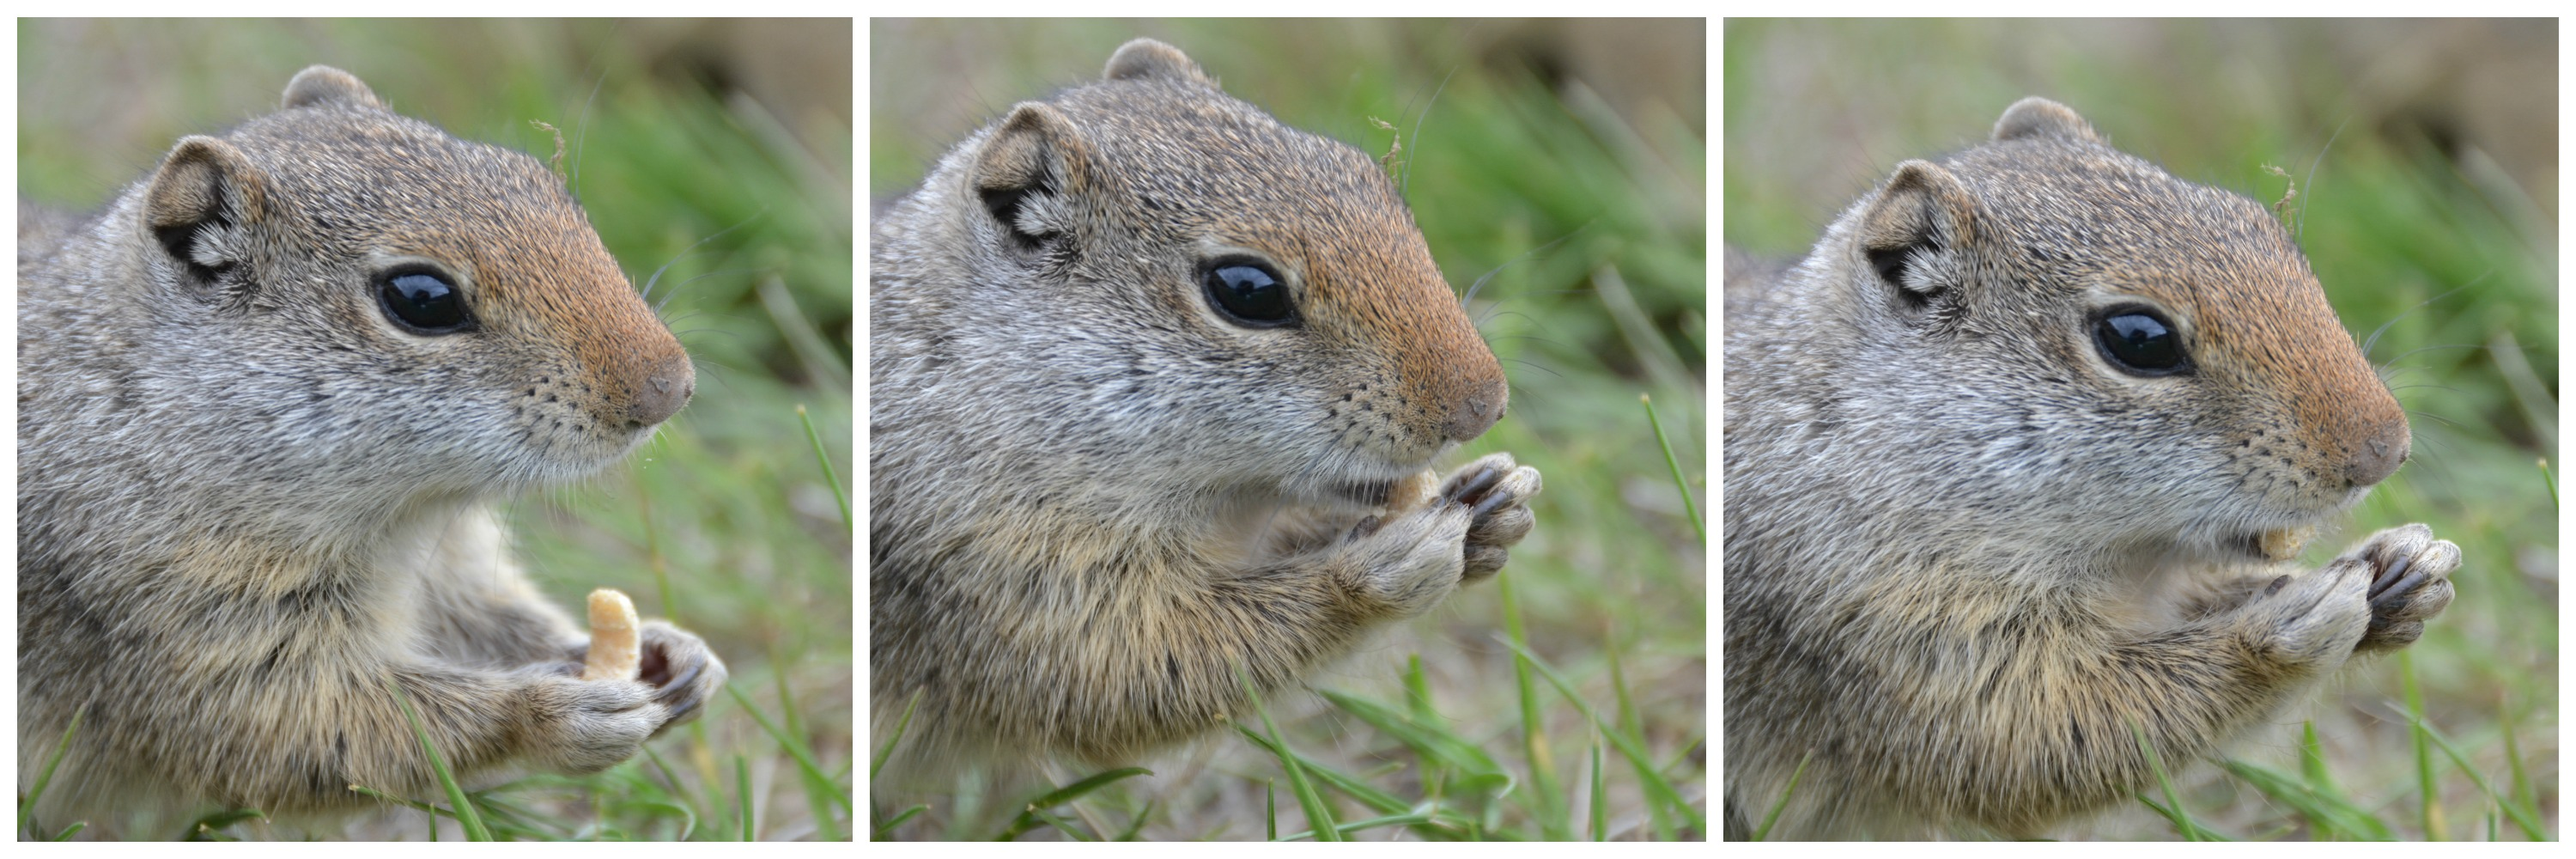 groundsquirrel